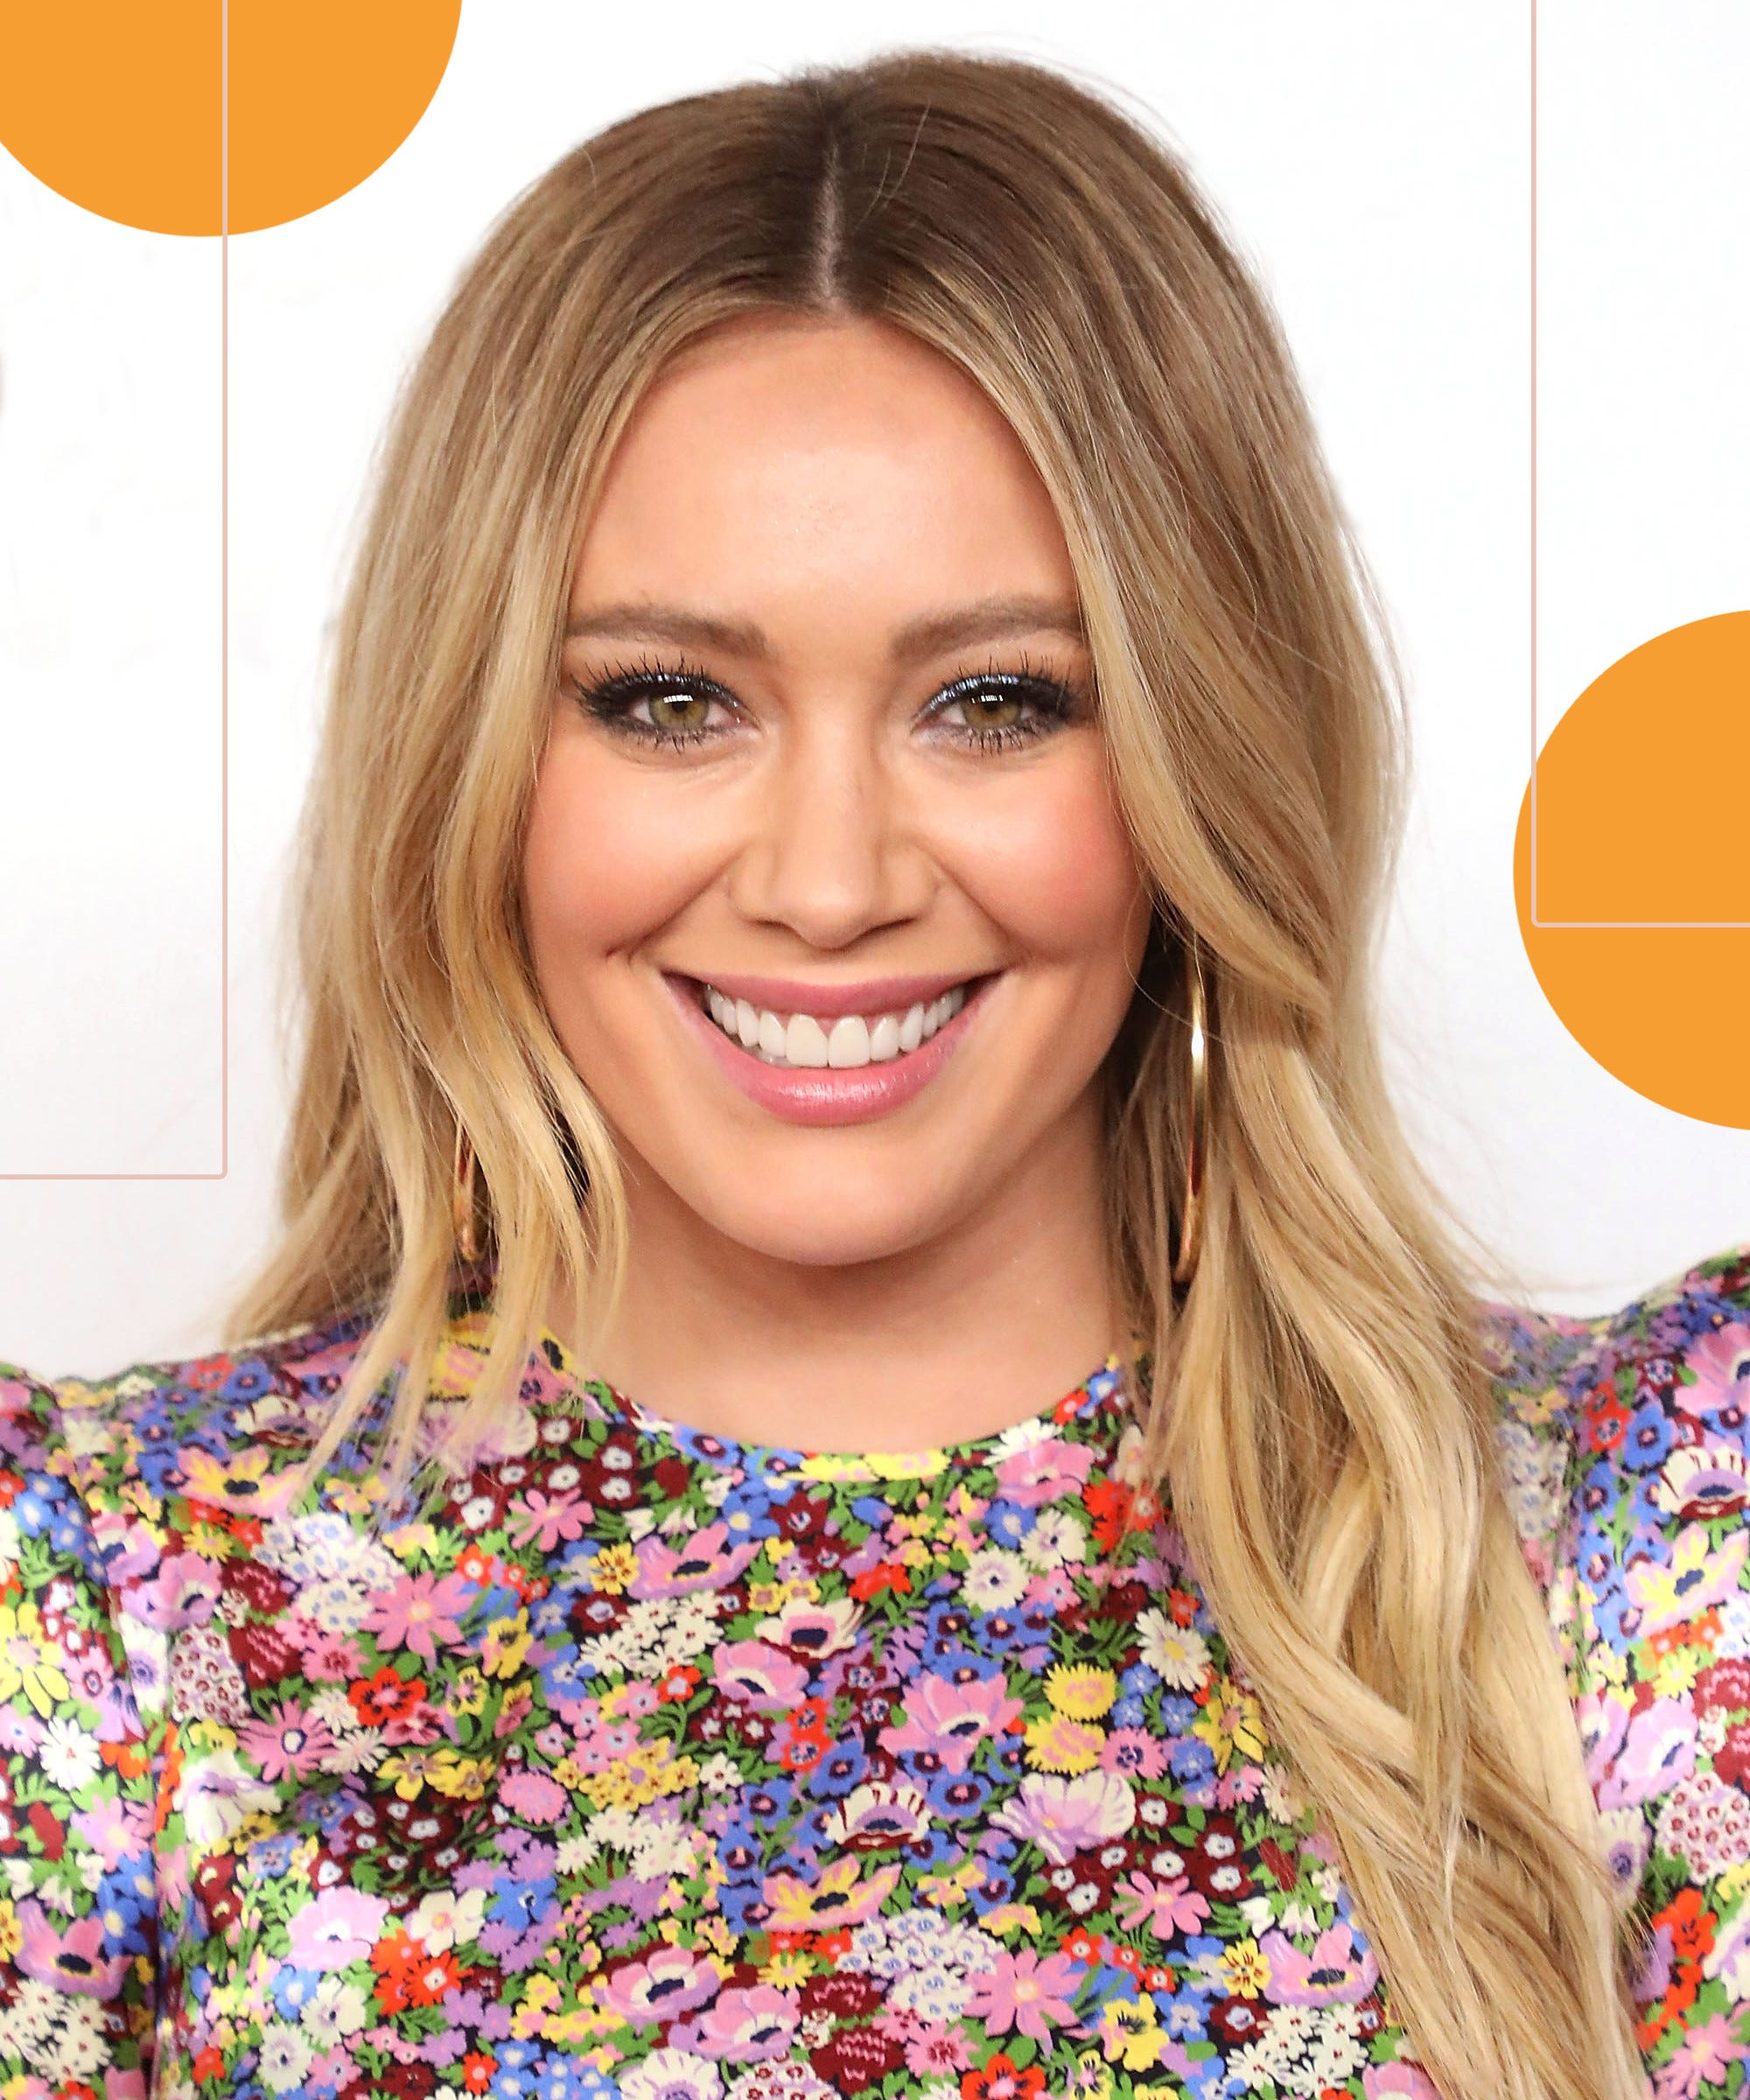 Hilary Duff Loves New In Common Beauty Hair-Care Brand